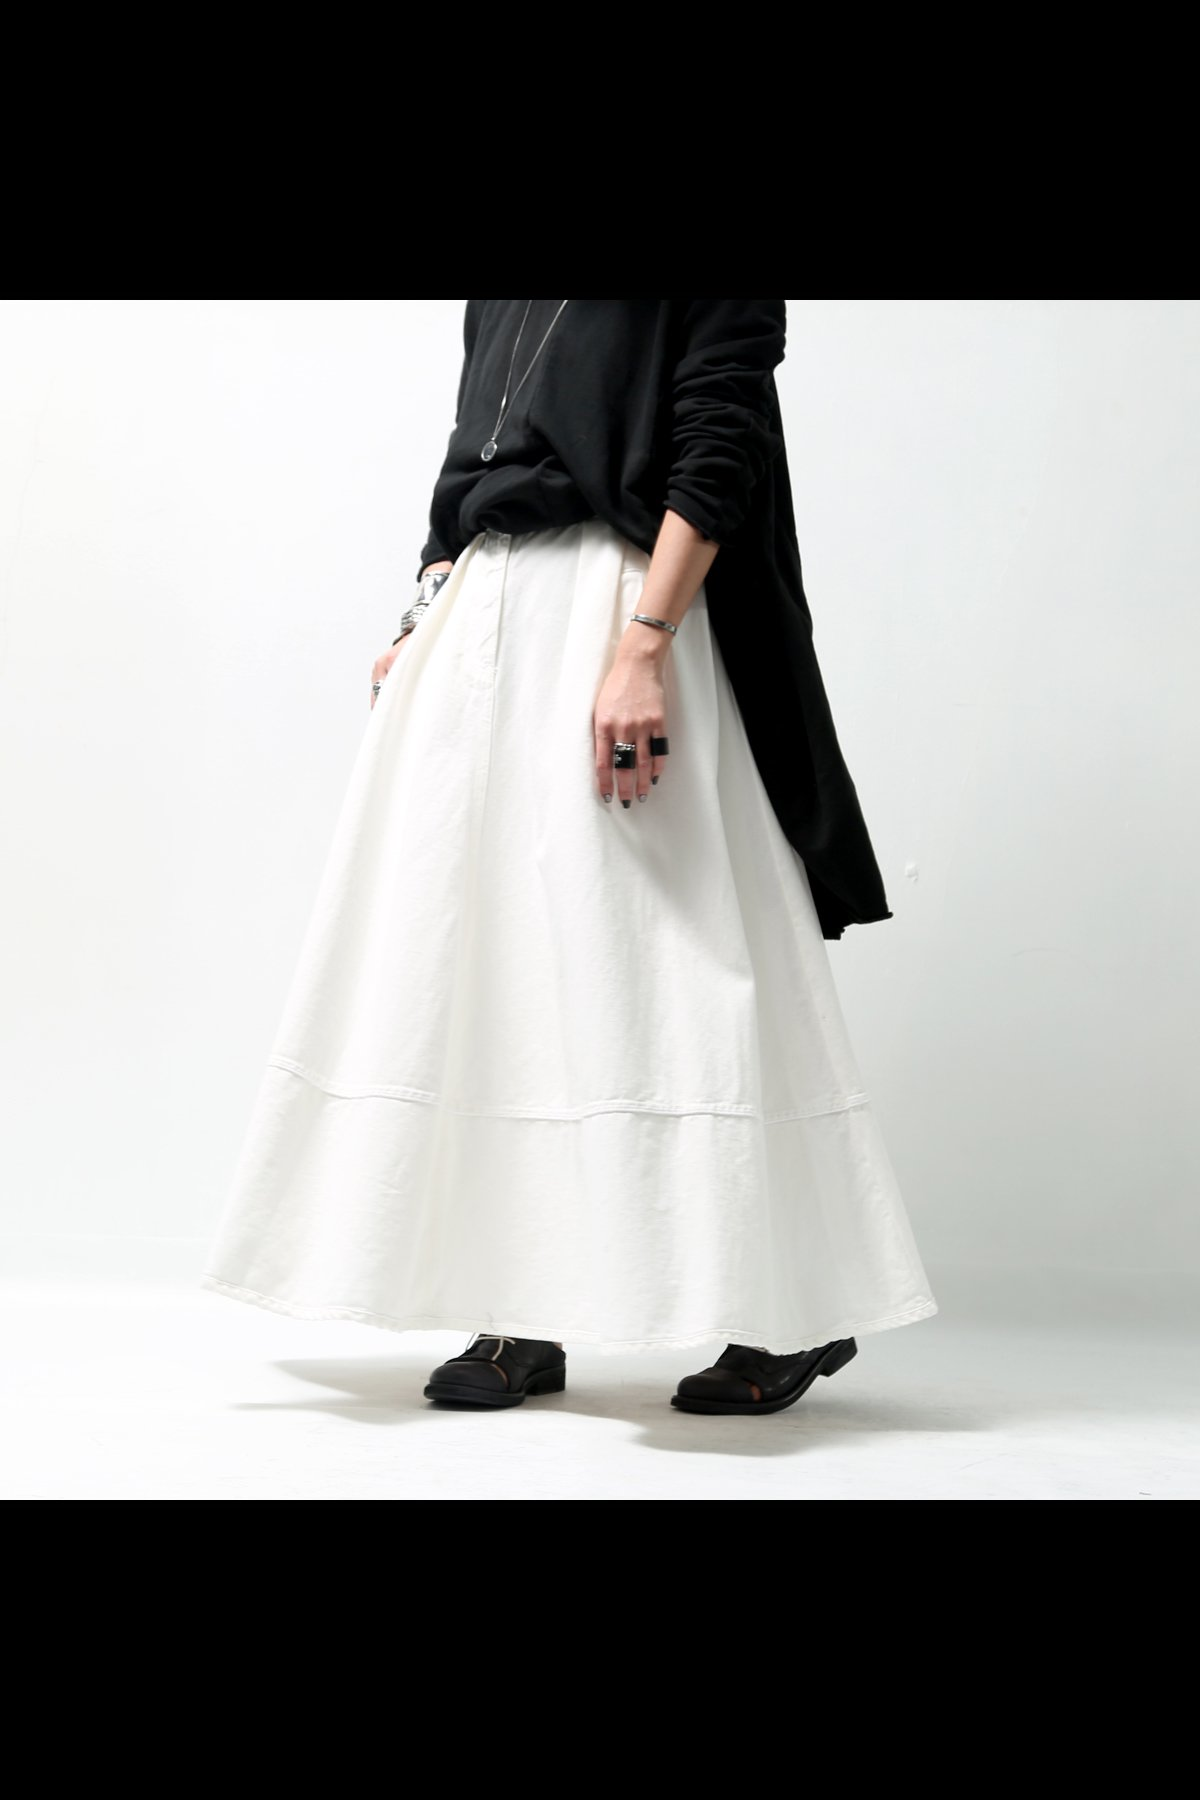 <img class='new_mark_img1' src='//img.shop-pro.jp/img/new/icons8.gif' style='border:none;display:inline;margin:0px;padding:0px;width:auto;' />FLARE STRETCH DENIM SKIRT 18WZUC03_WHITE